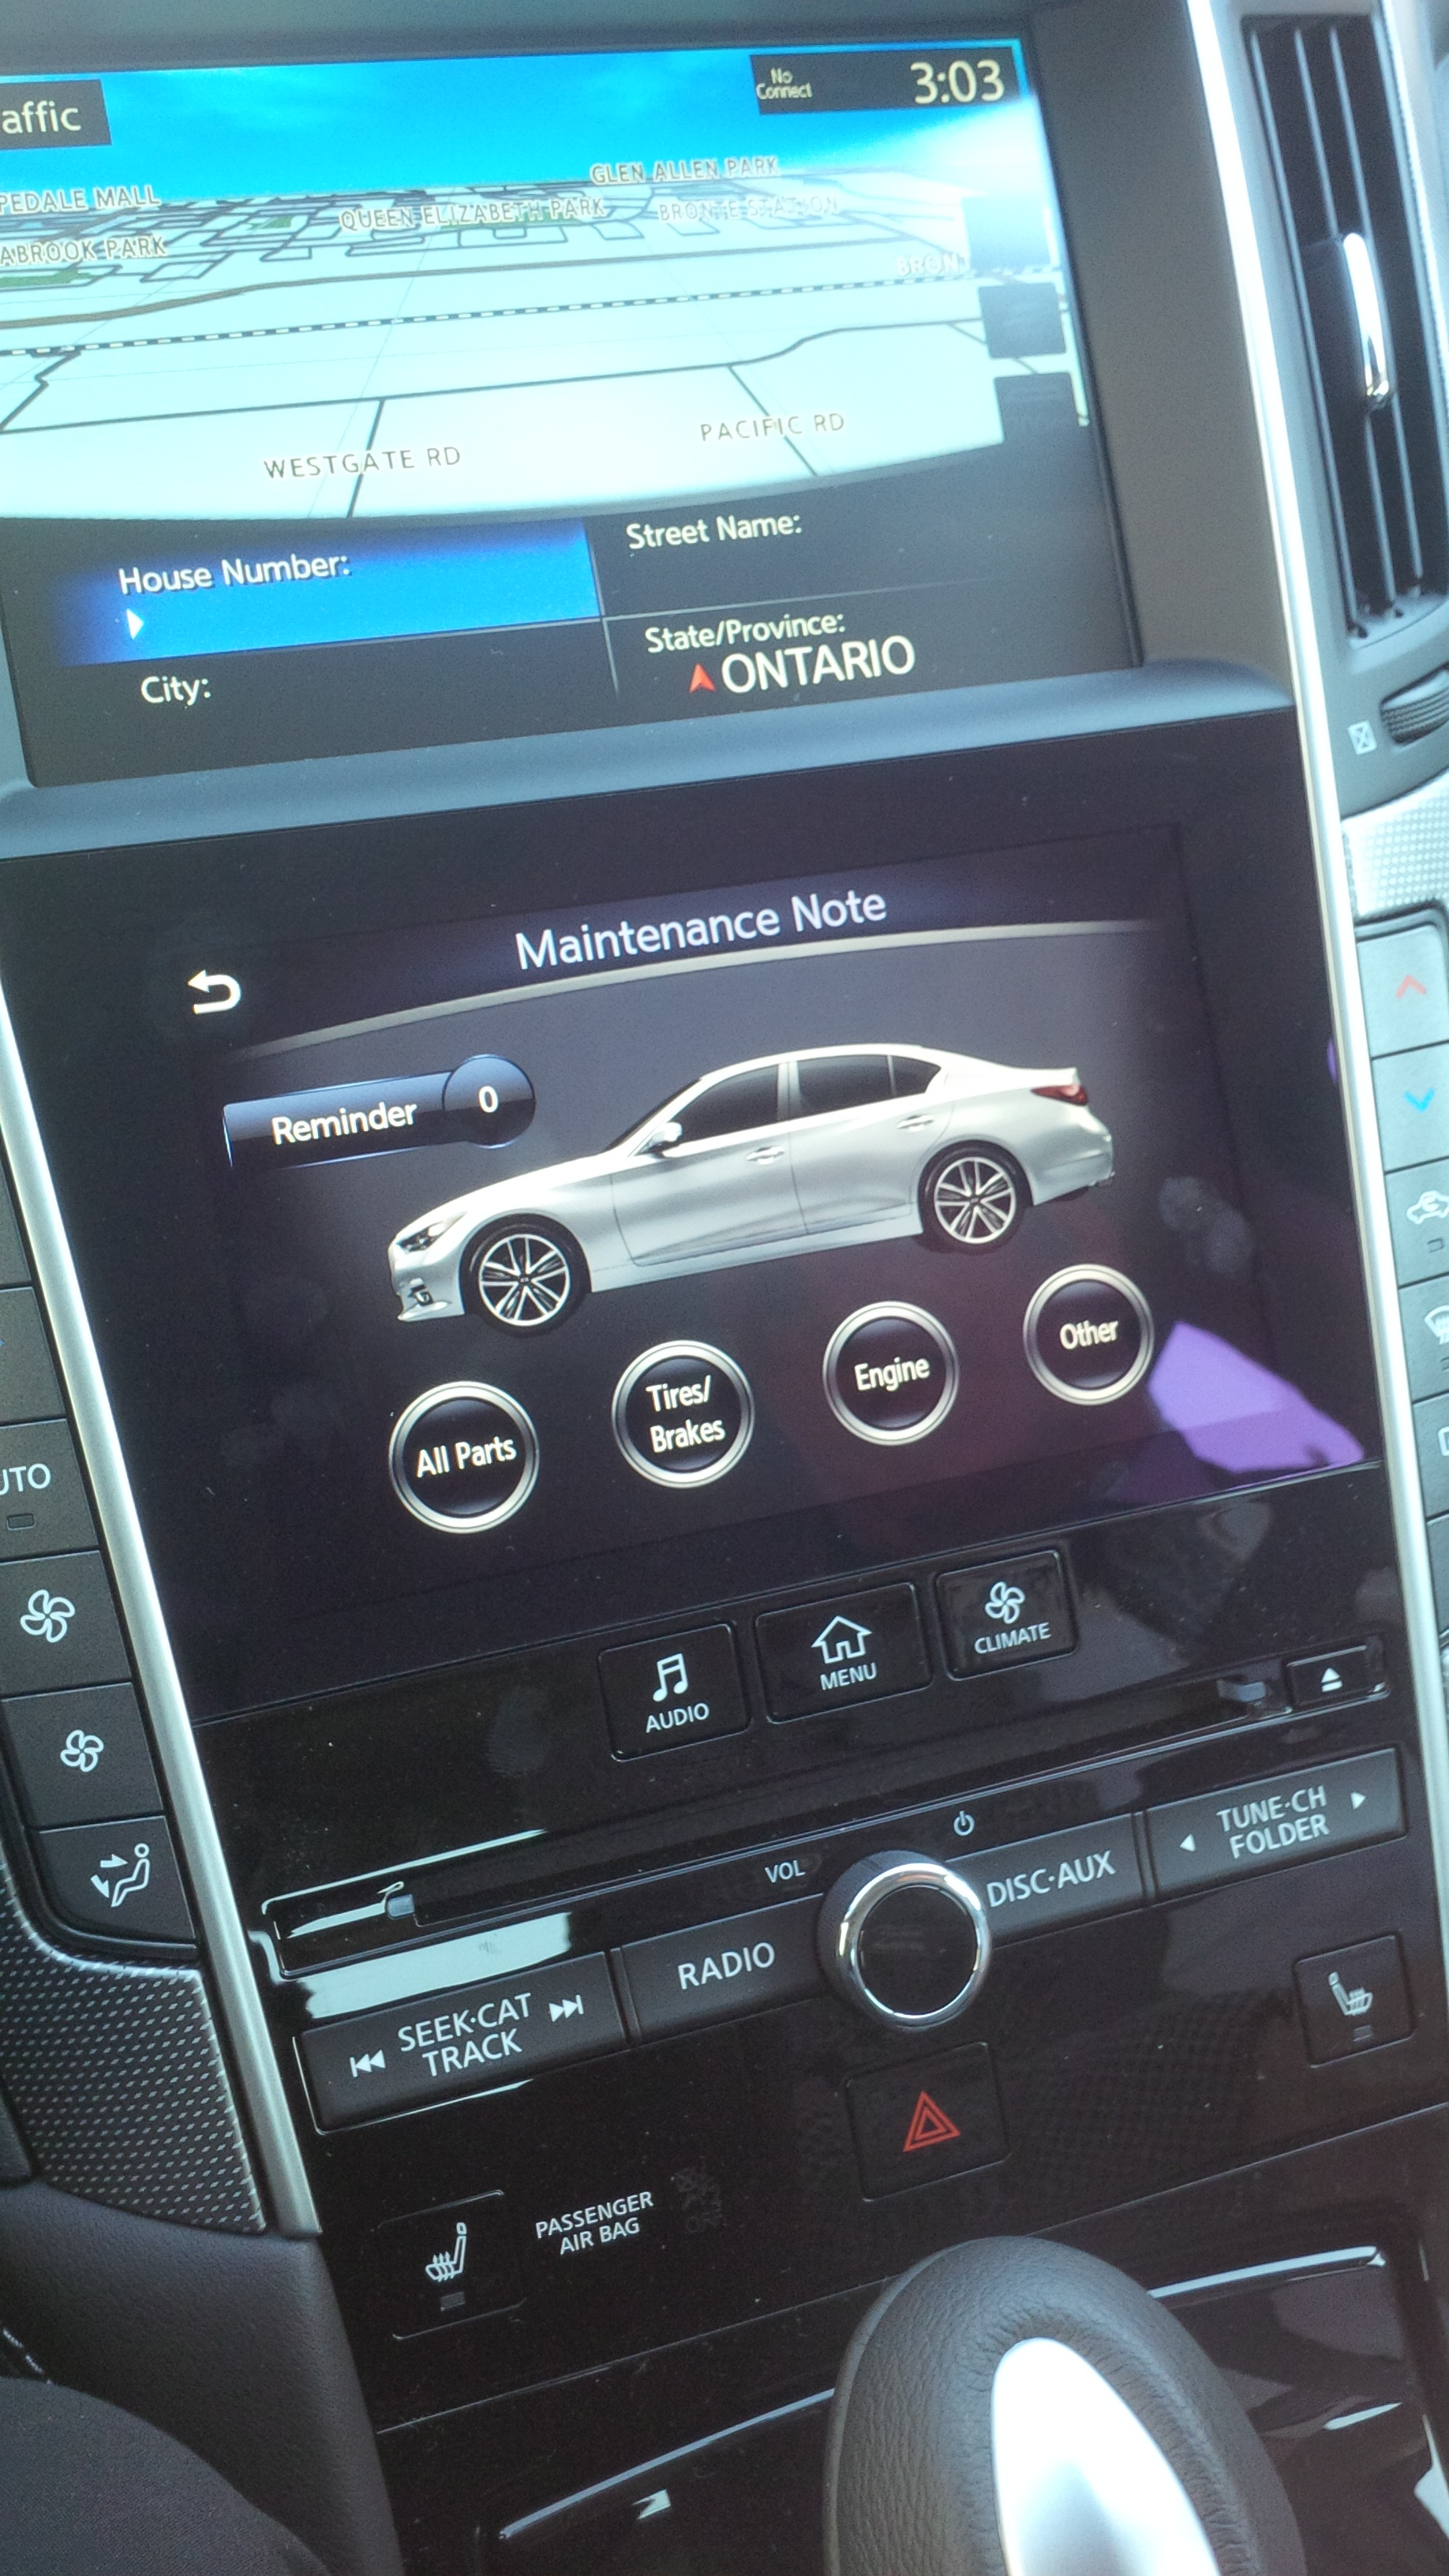 Oil Reset » Blog Archive » 2014 Infiniti Q50 Maintenance